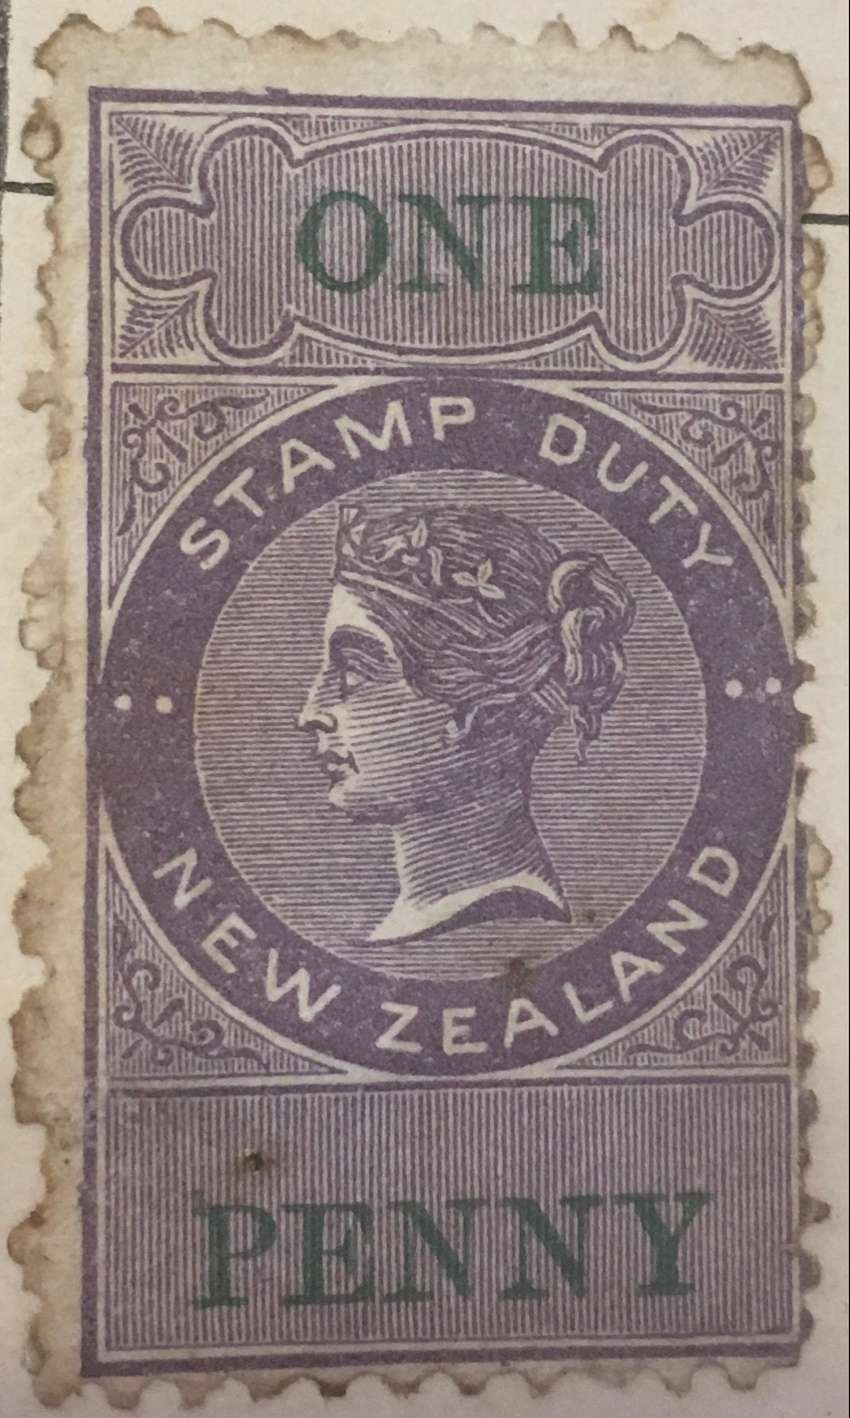 1881 New Zealand one penny stamp duty stamp 0